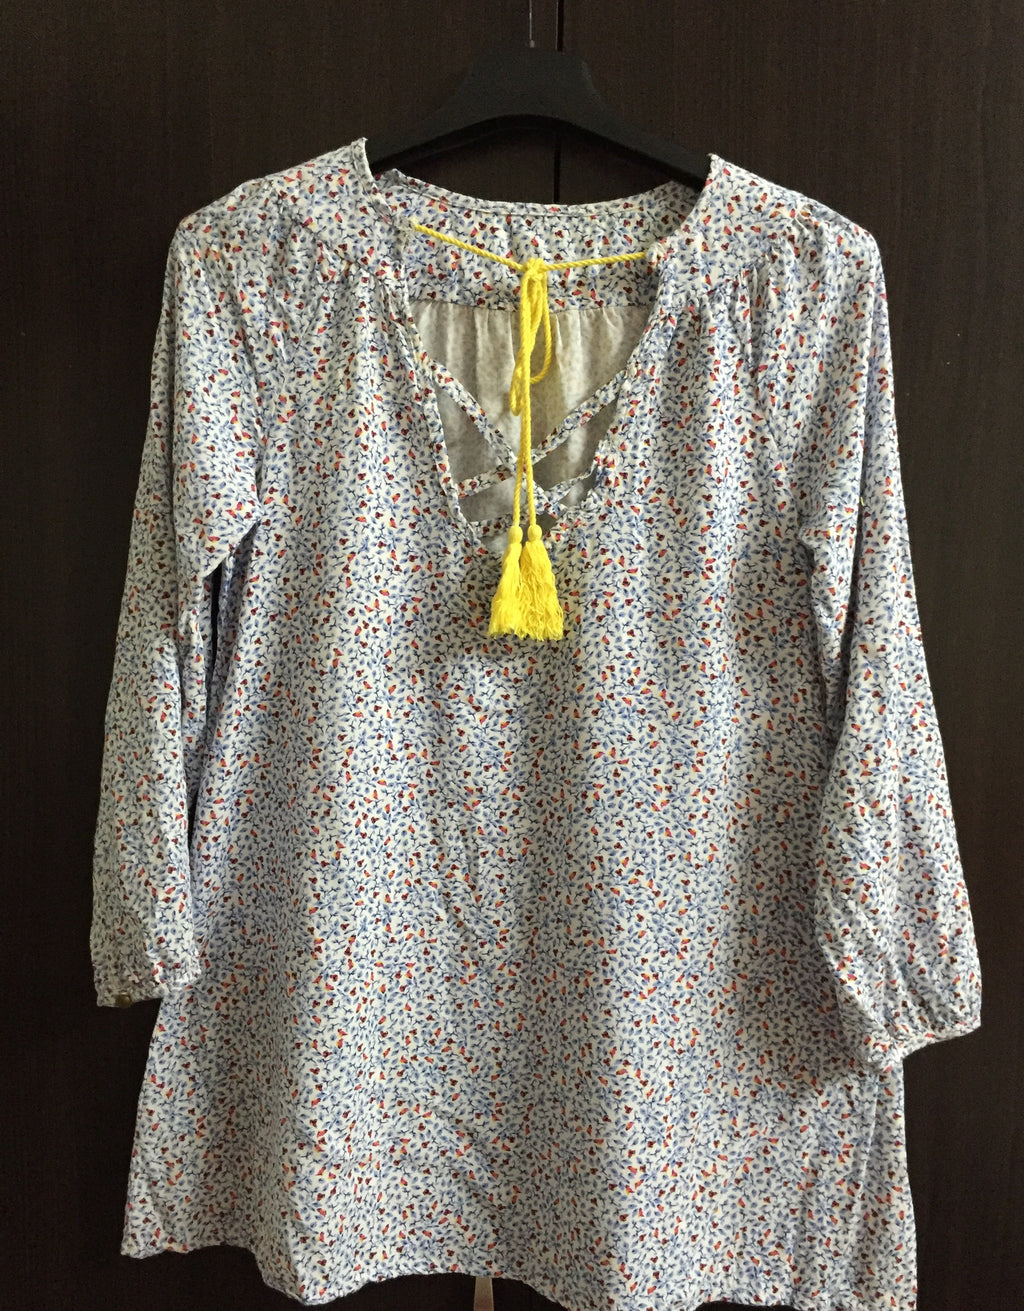 Floral White Full Sleeves top with Yellow String